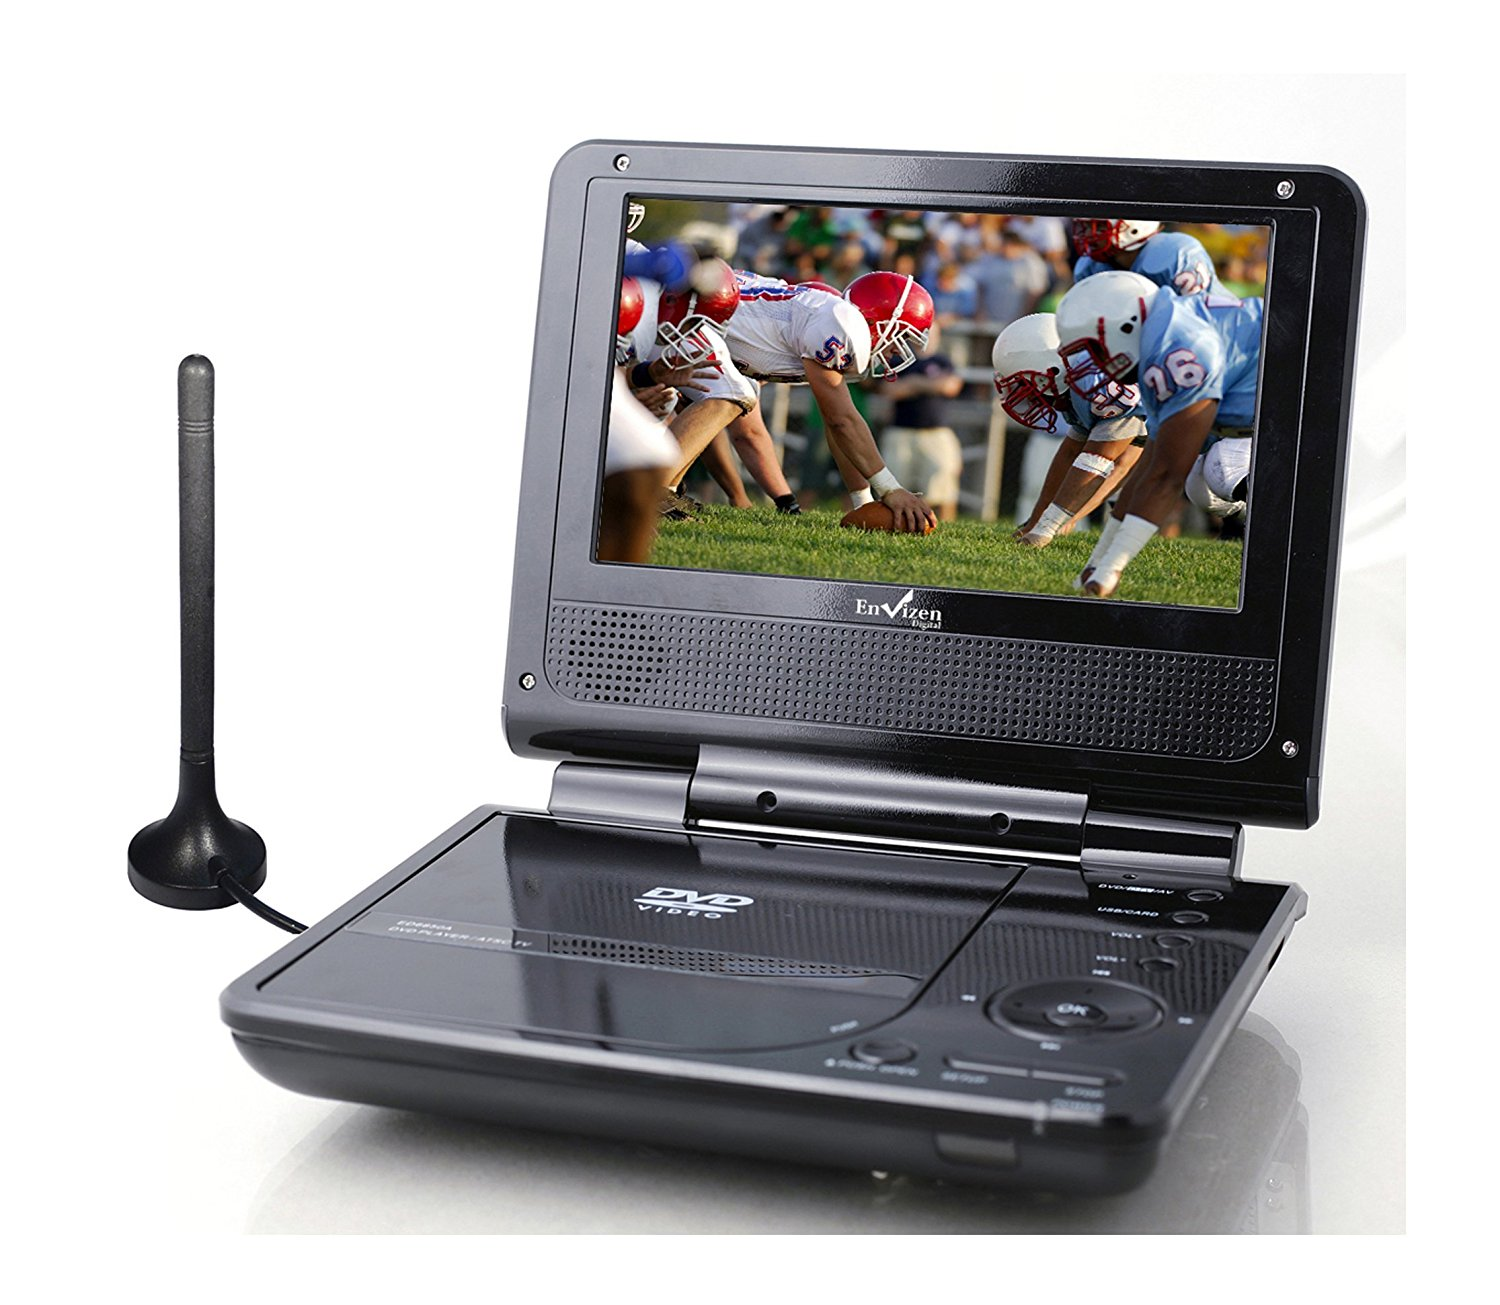 Envizen Digital Portable DVD and TV Player